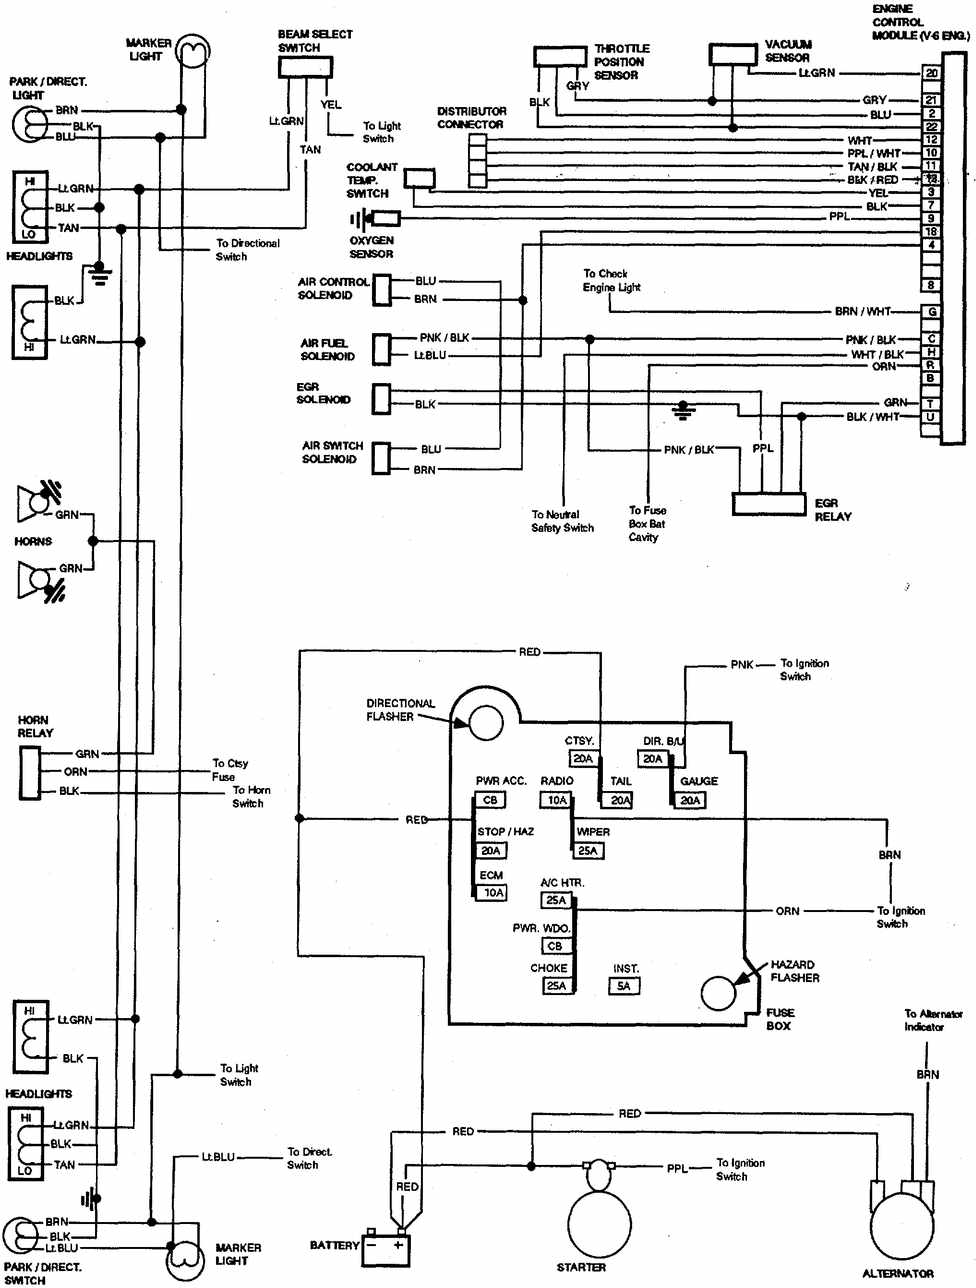 wiring diagram ford galaxy 2001